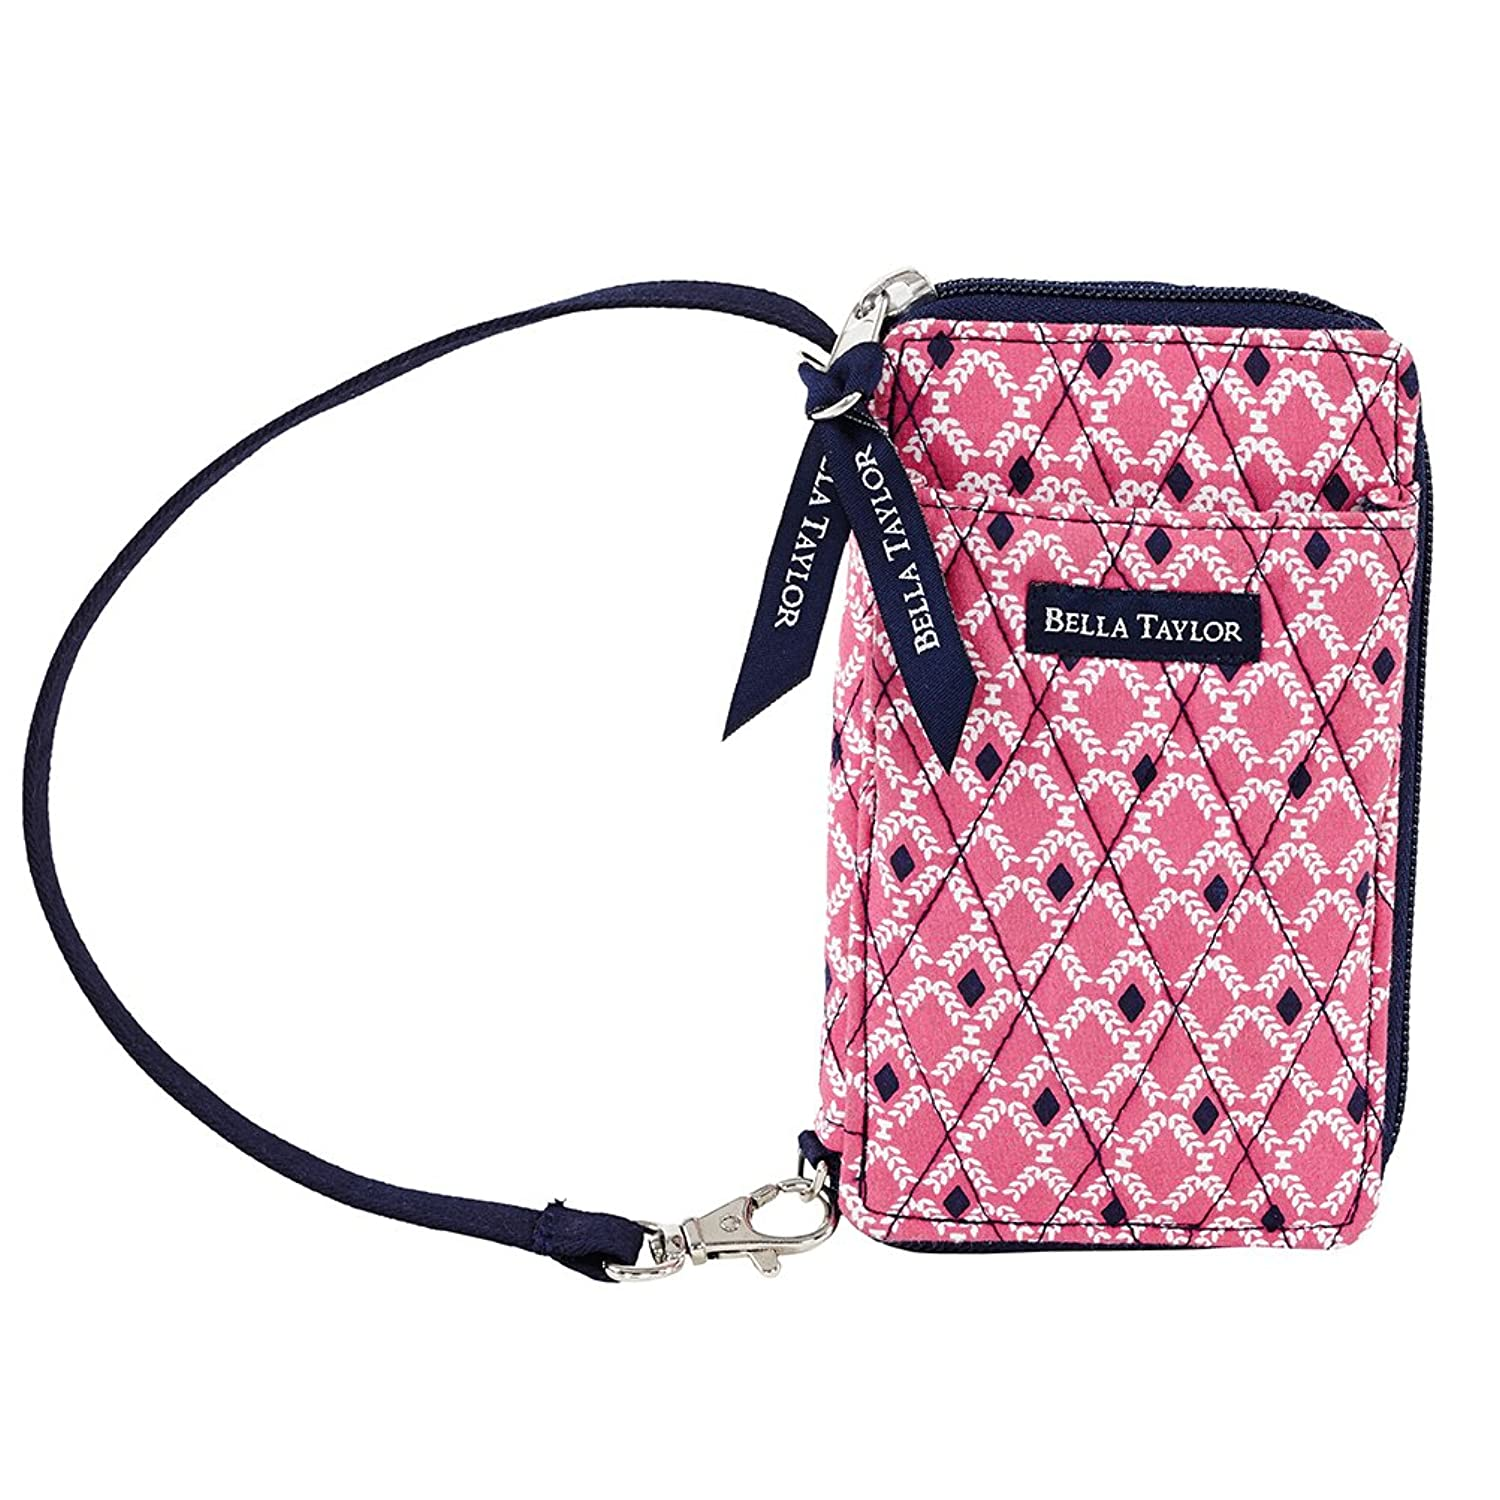 Carlisle Quilted Cotton Wristlet Wallet